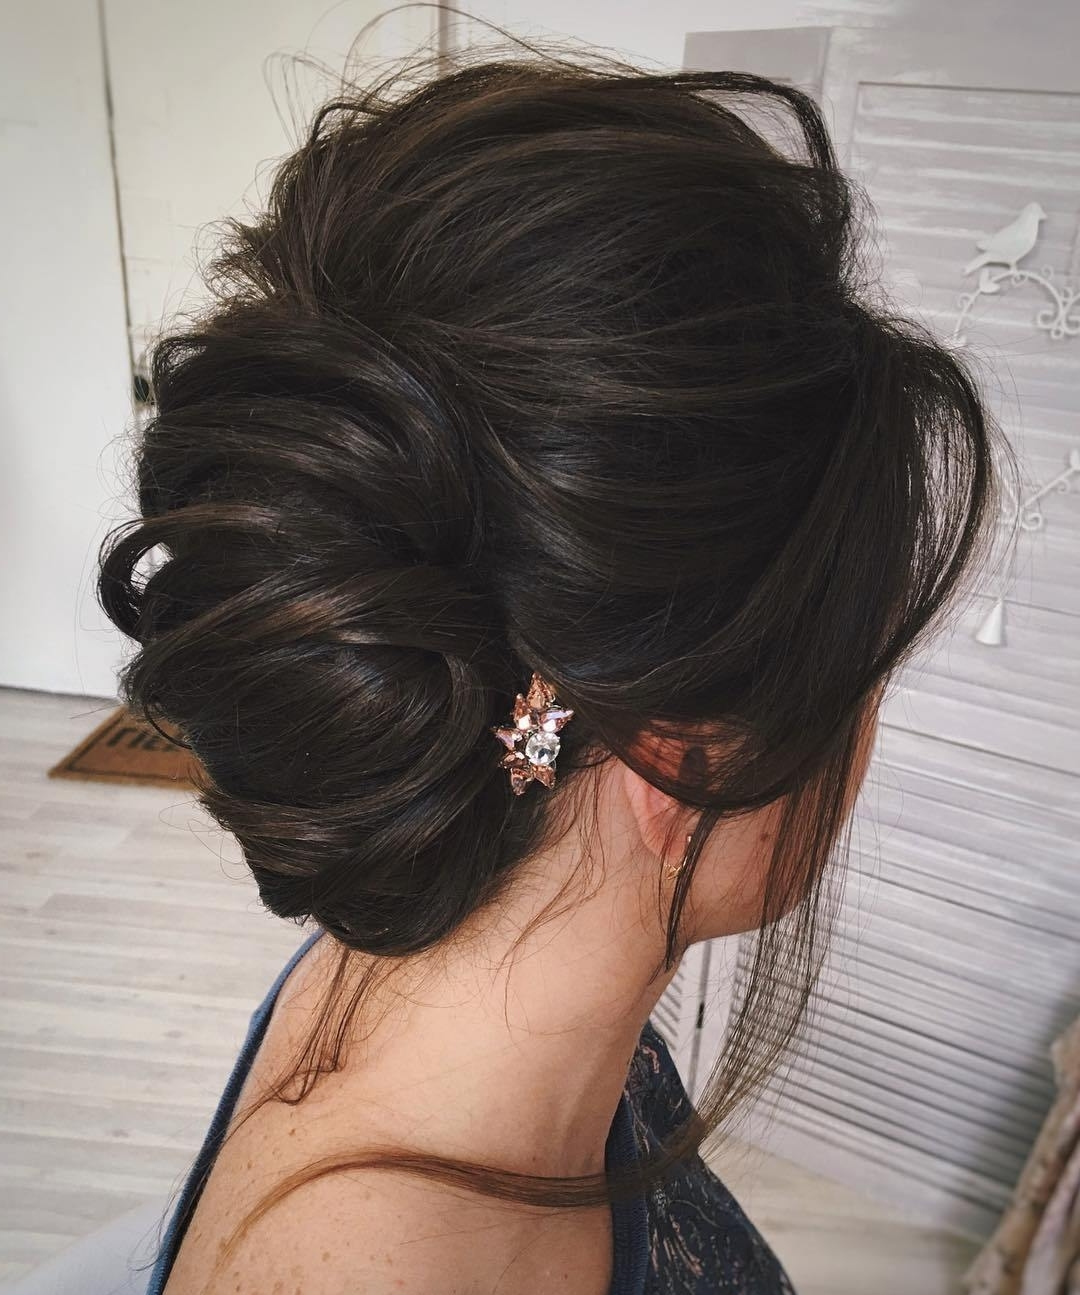 Long Hair Archives – Trubridal Wedding Blog Regarding Trendy Messy Wedding Hairstyles For Long Hair (View 11 of 15)